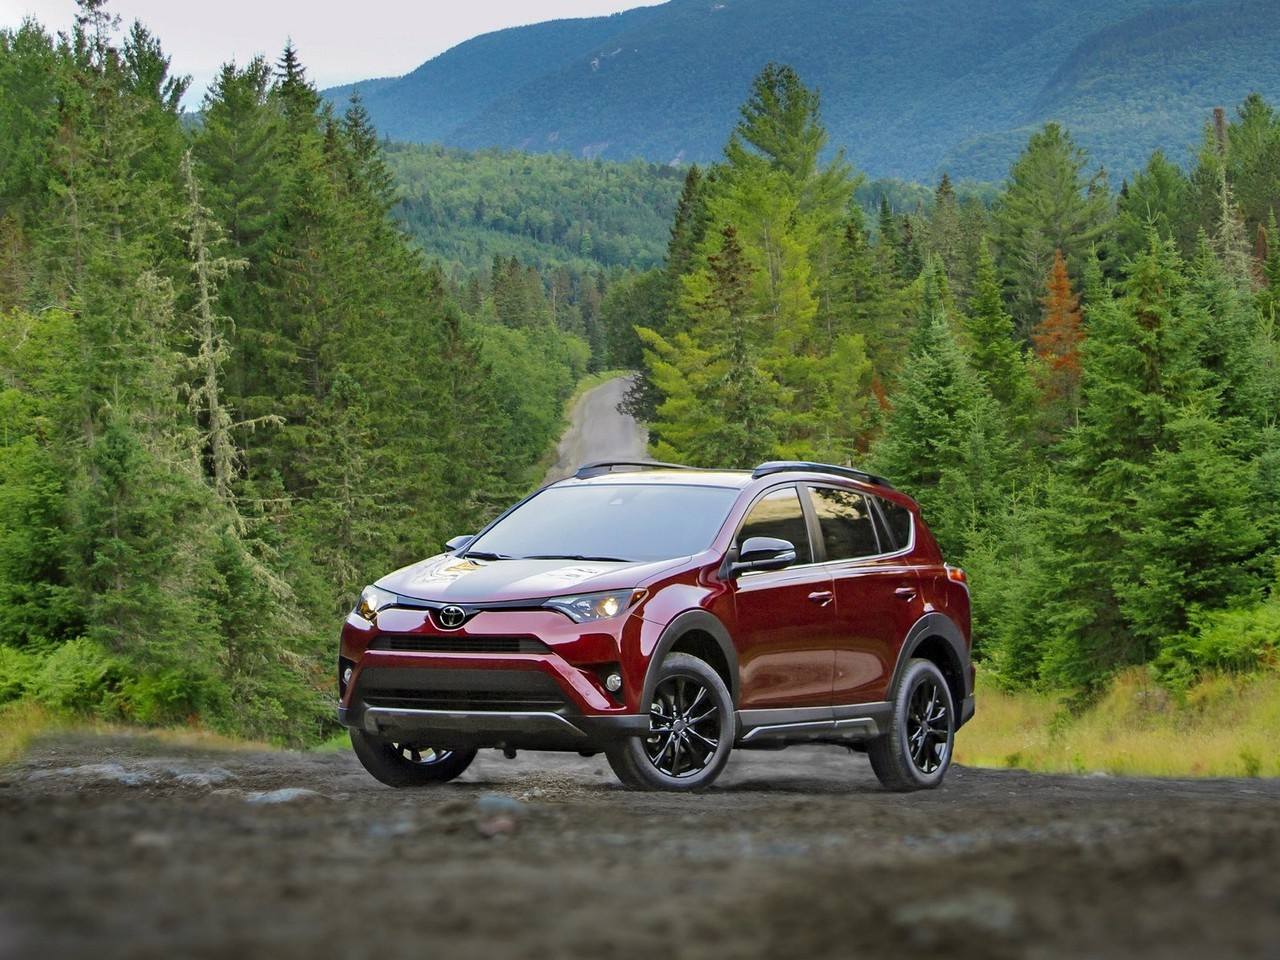 toyota rav4 adventure 2018 specifications et images photoscar. Black Bedroom Furniture Sets. Home Design Ideas